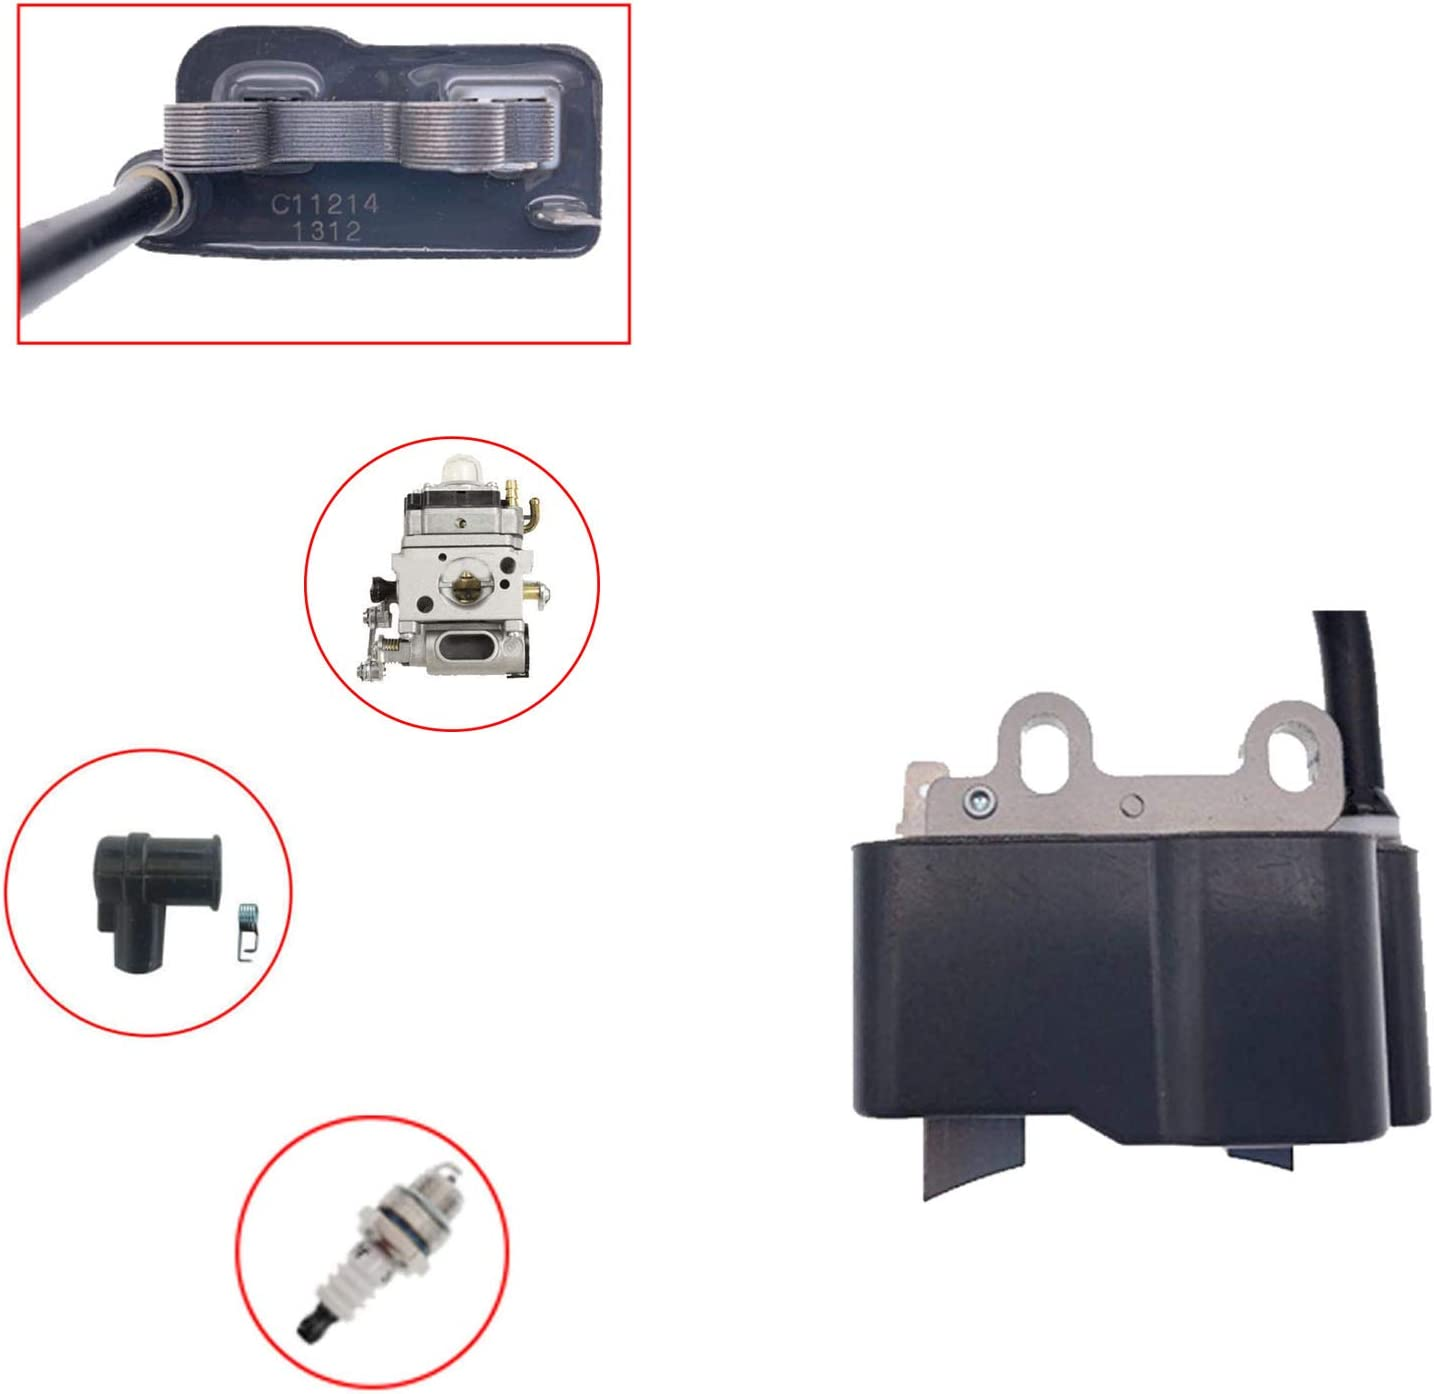 PARTSRUN PB500 Carburetor Ignition Coil for Echo PB500 PB500T PB500H EB508RT Backpack Blower Carb A021001641 A021001642 WLA-1 Ignition Coil A411000420 ID#C11214 with BM6A Spark Plug,ZF276-KIT